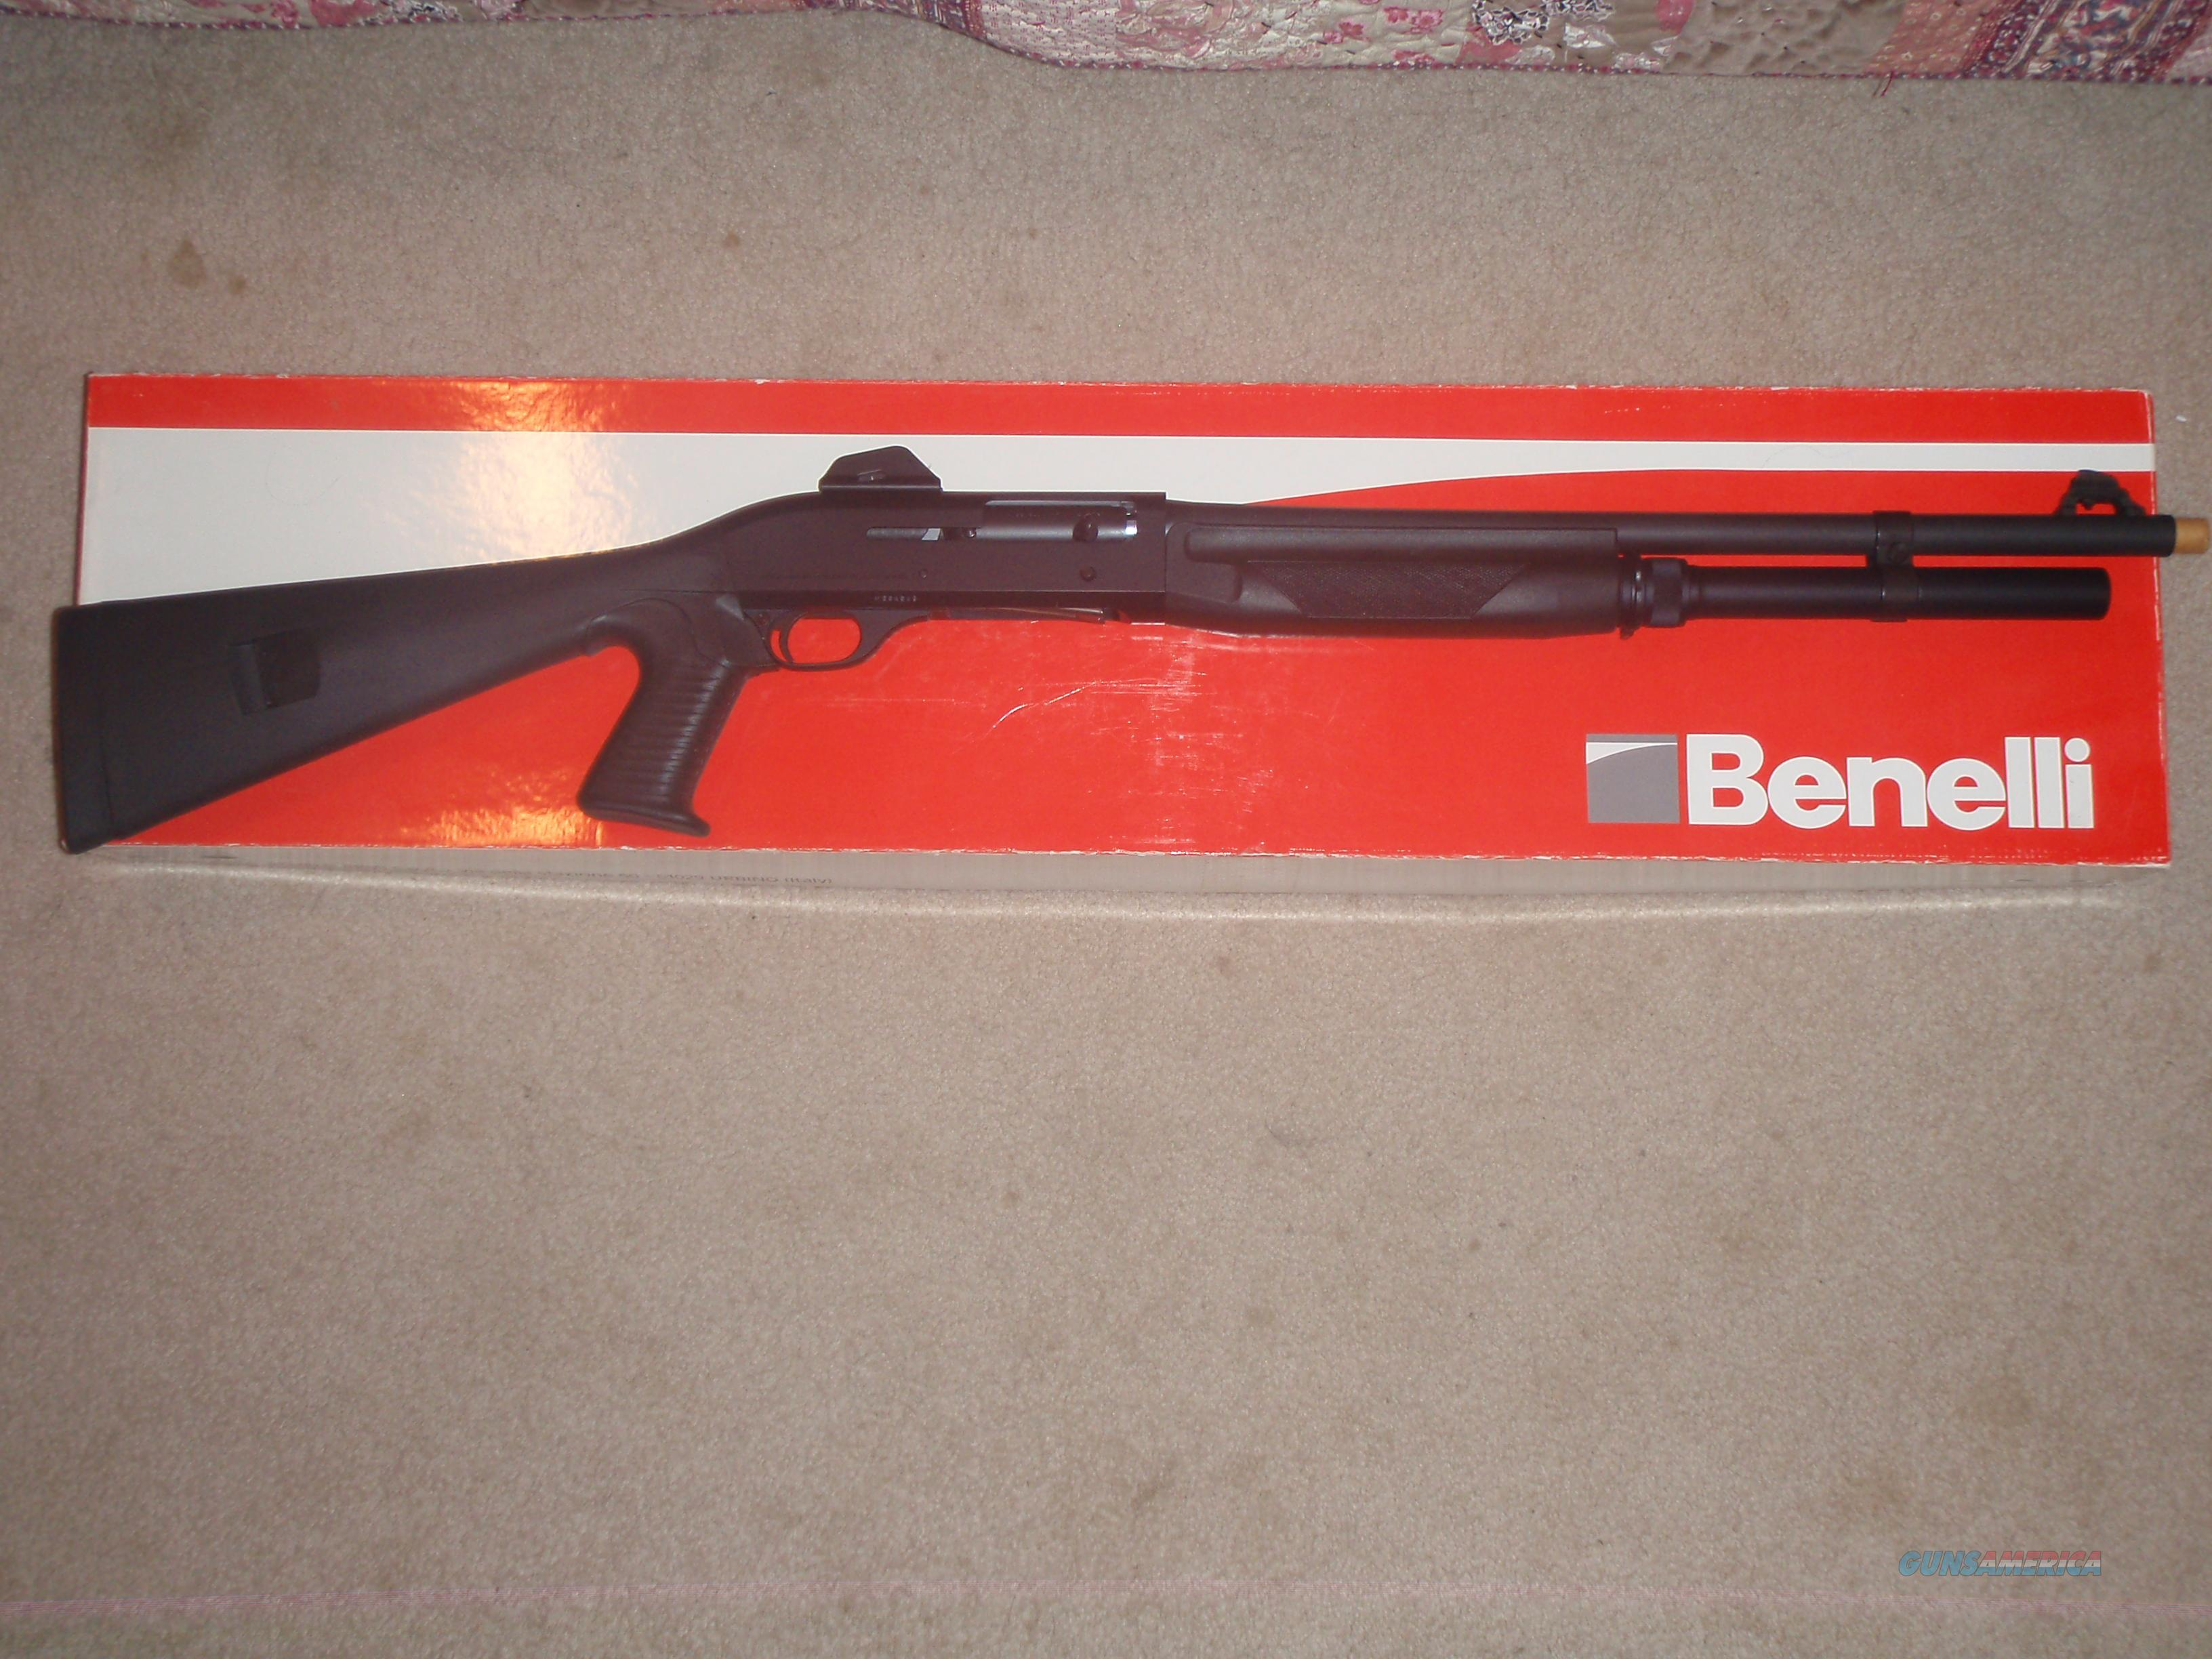 HECKLER & KOCH  Imported  BENELLI  M1  SUPER 90 ****New-In-Box**** FREE SHIPPING!  Guns > Shotguns > Benelli Shotguns > Tactical